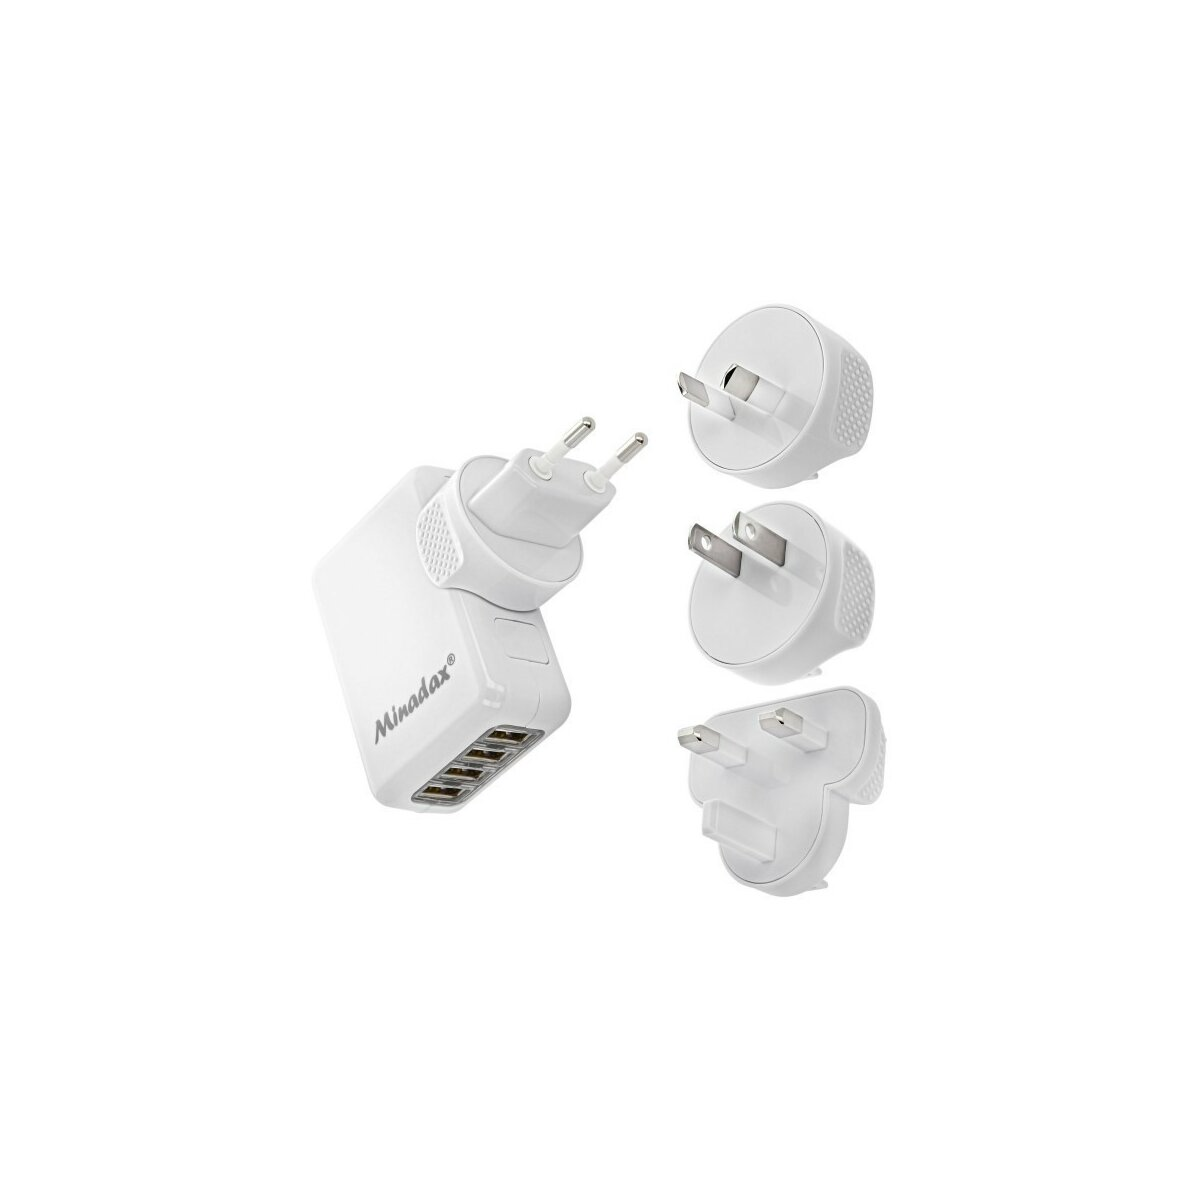 Minadax® Universal 4-Port USB 5V / 2.1A Reise Ladegerät, Travel Kit Charger